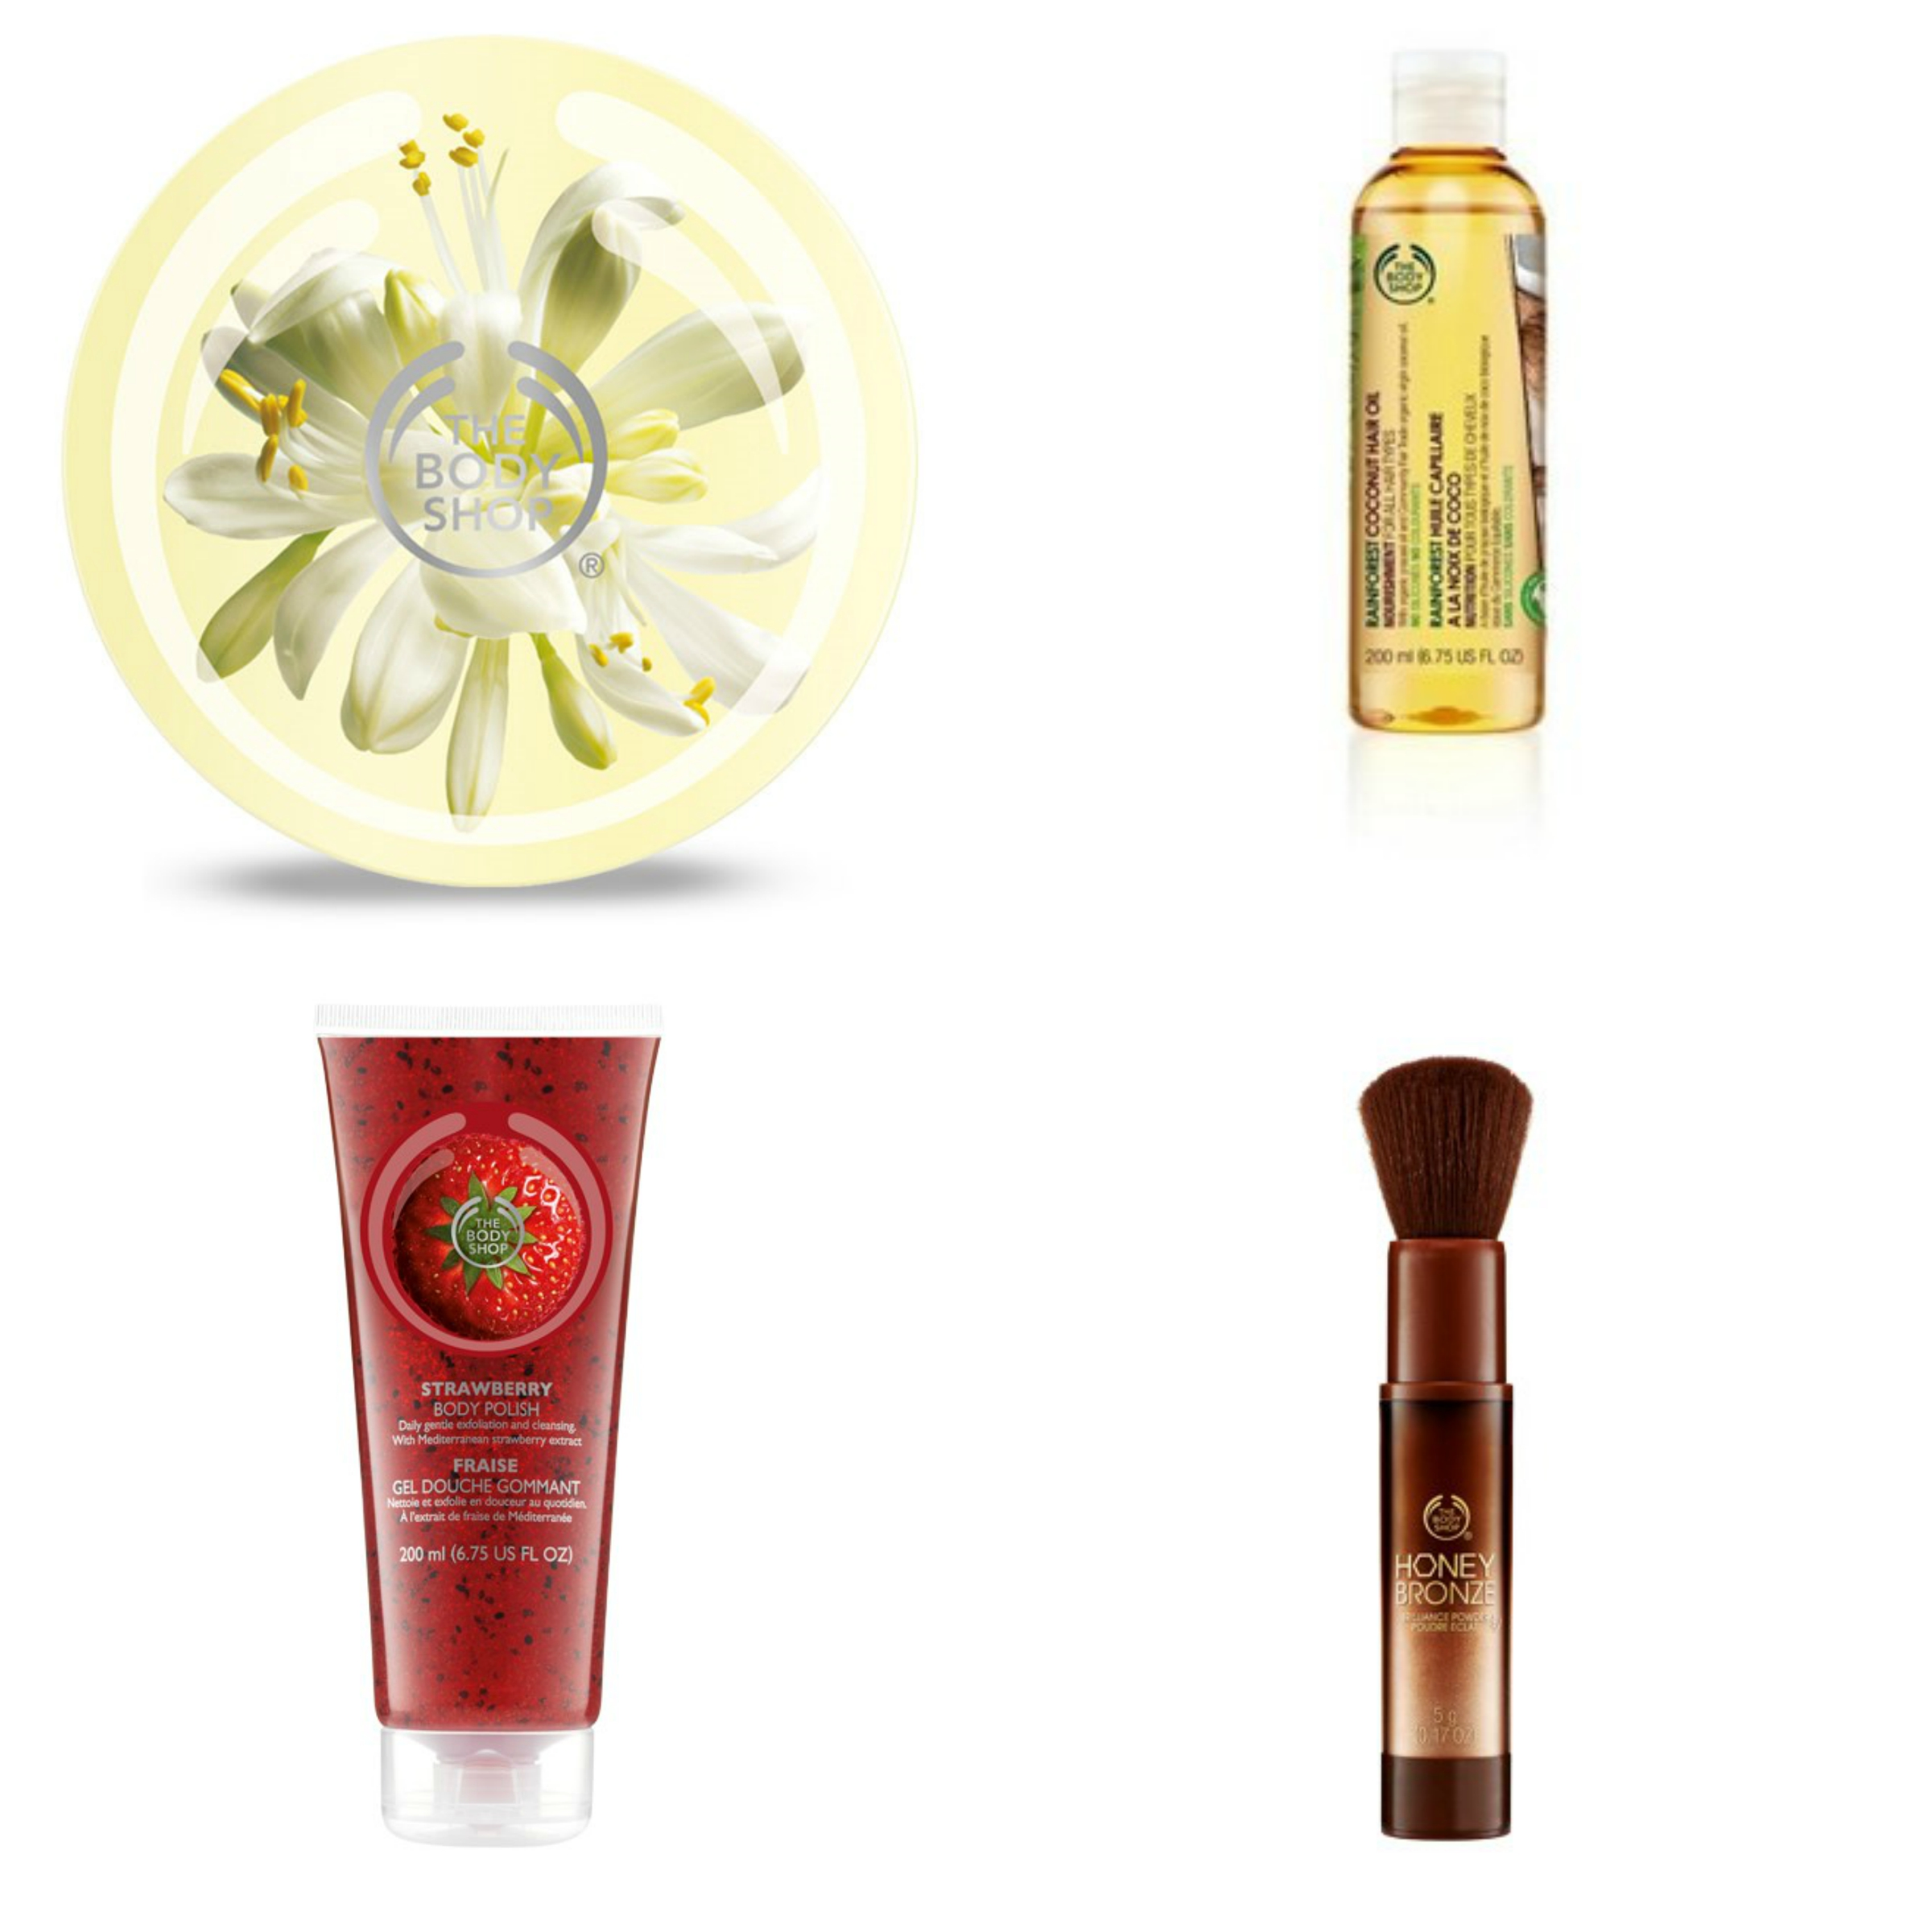 Photo of The Top 4 Body Shop Products that Every Girl Must Own!